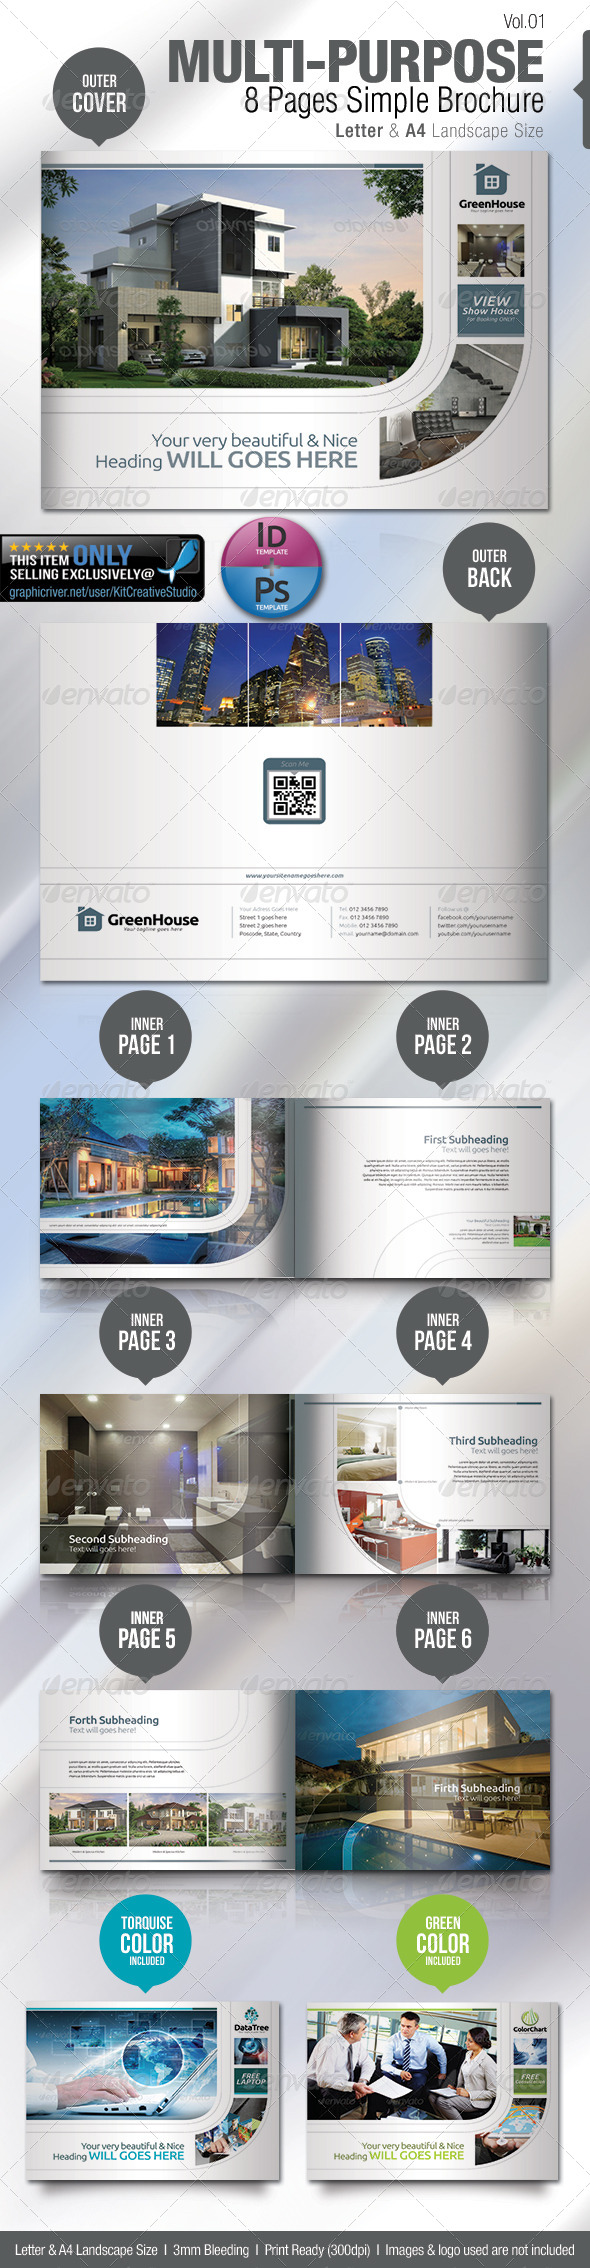 Multi-purpose 8 Pages Simple Brochure - Brochures Print Templates